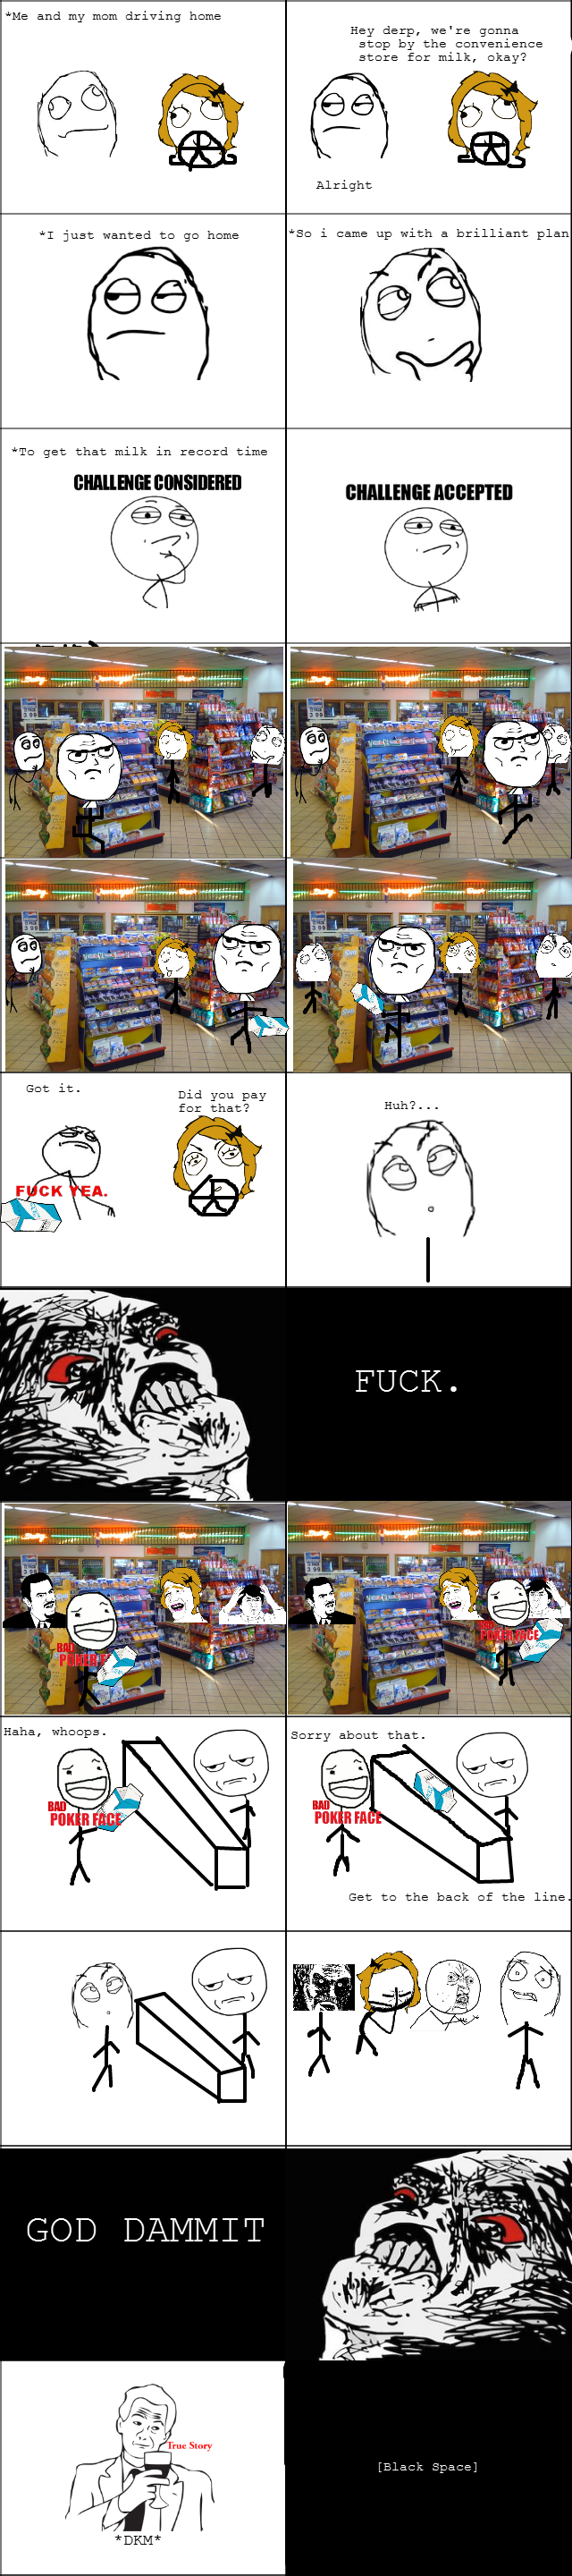 That awkward moment when.... OC First rage comic. Constructive criticism would be welcomed. Top 200! Top 150!! Top 100!!!.. Nice OC man, thumb ^^